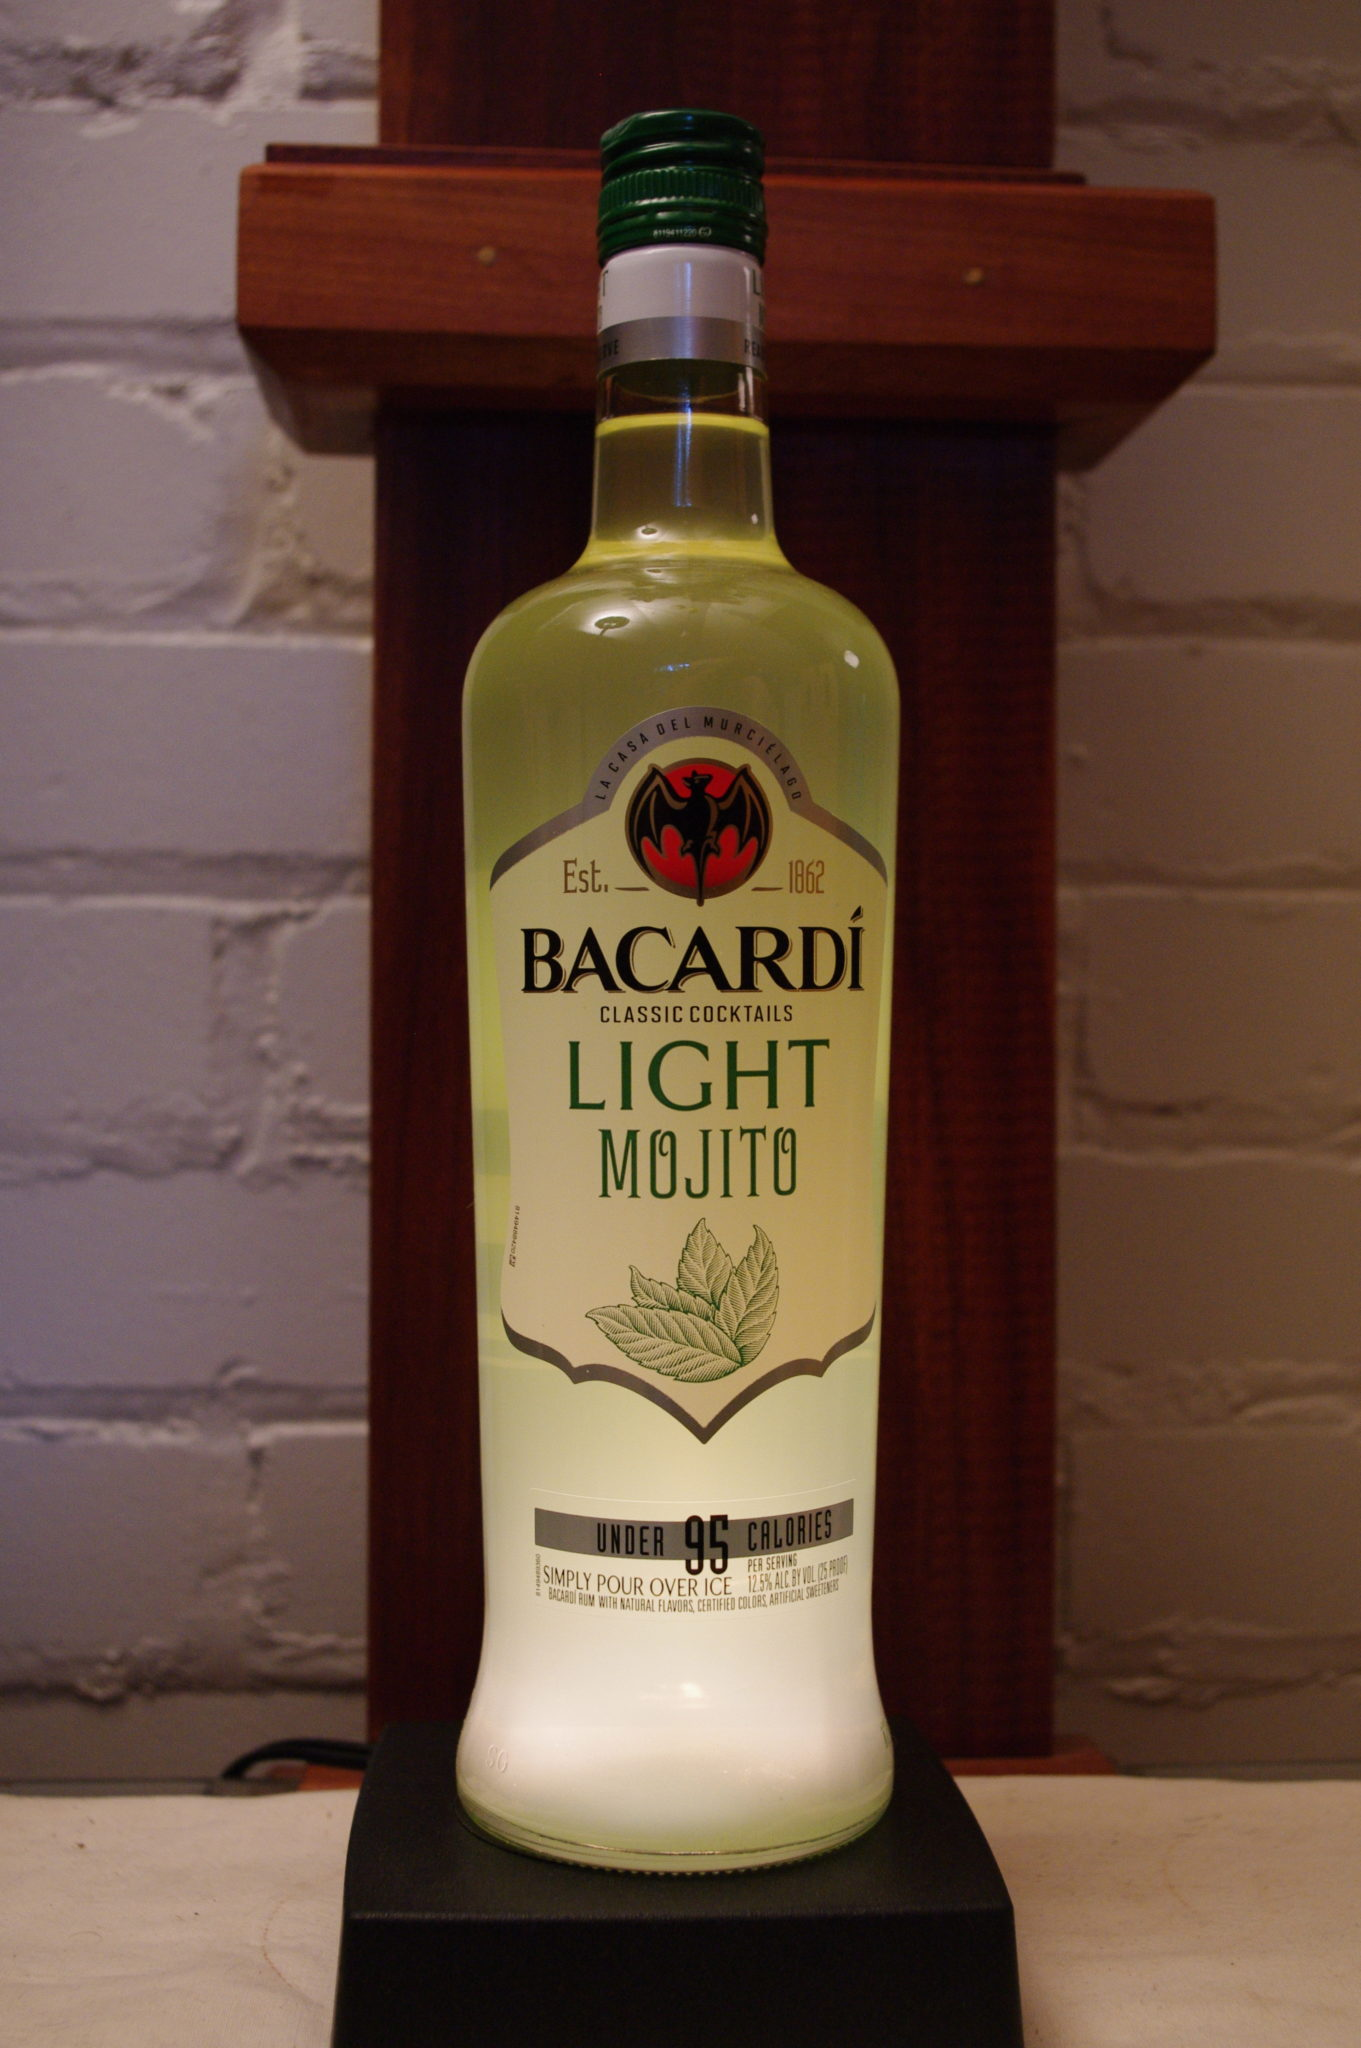 Bacardi Light Mojito Spirits Review